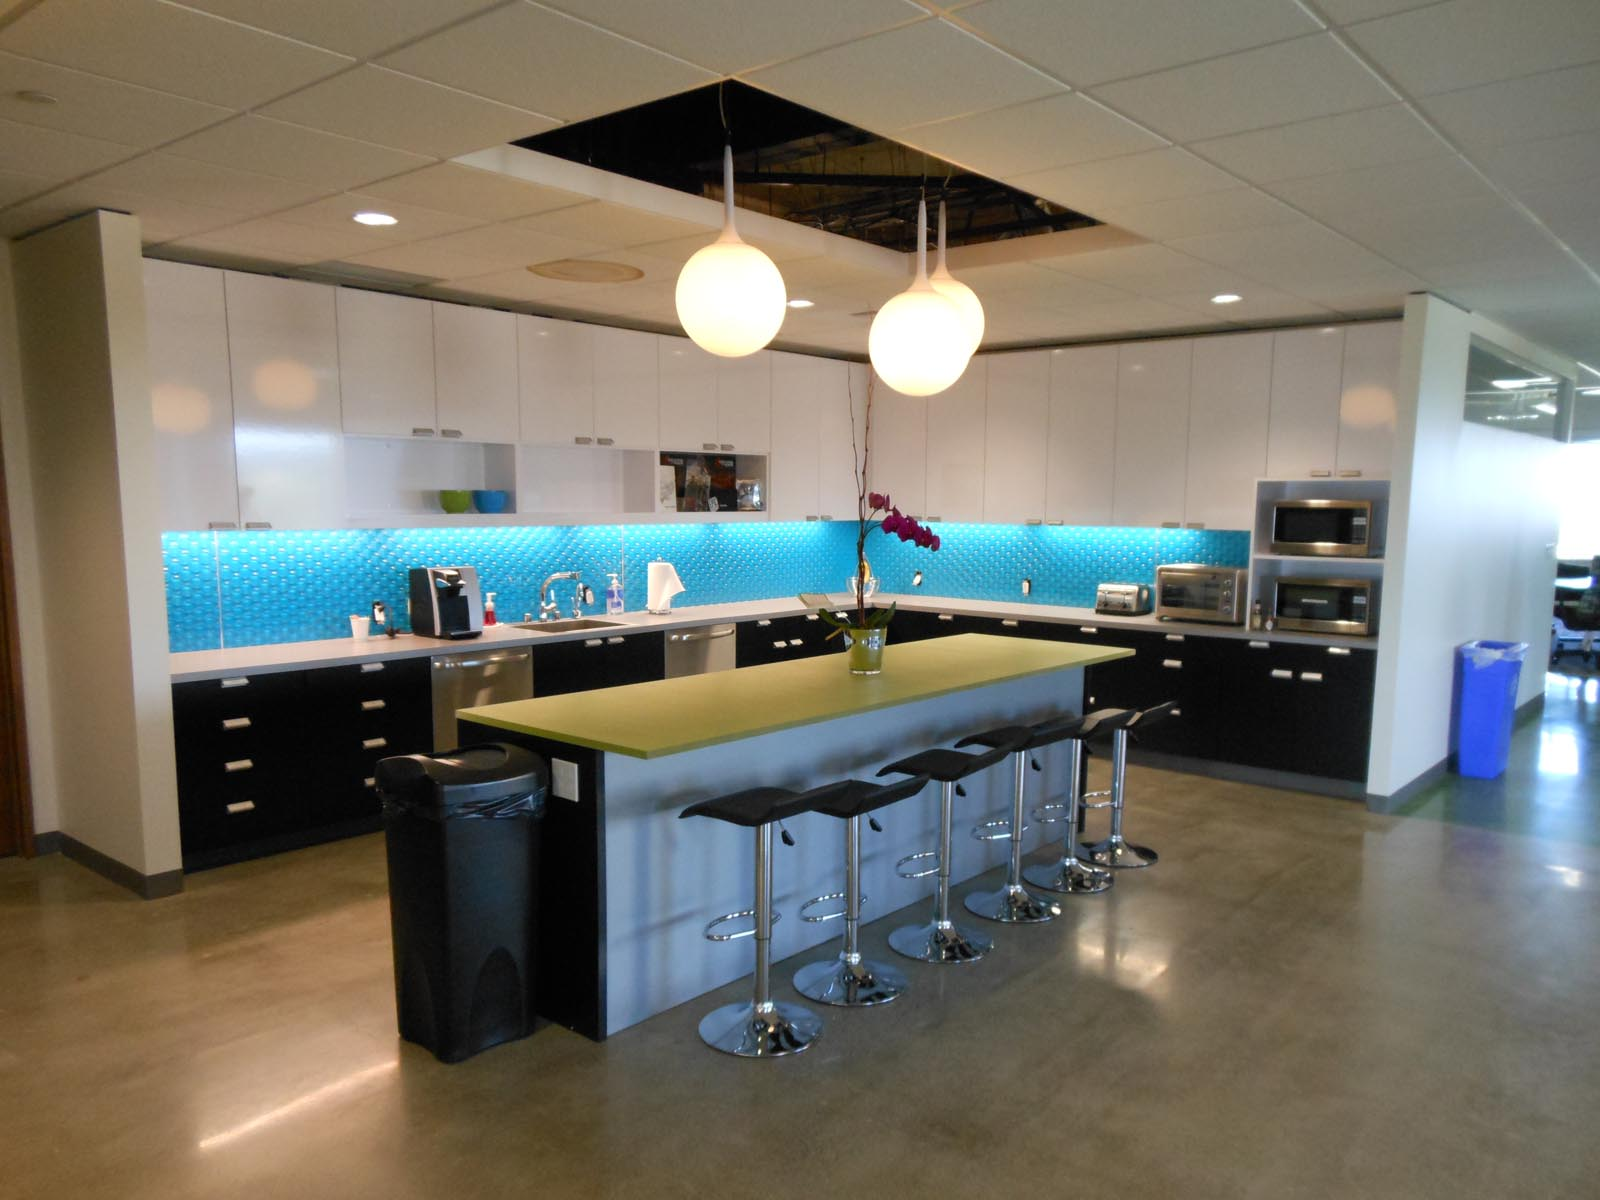 Epic Games kitchen and dining area